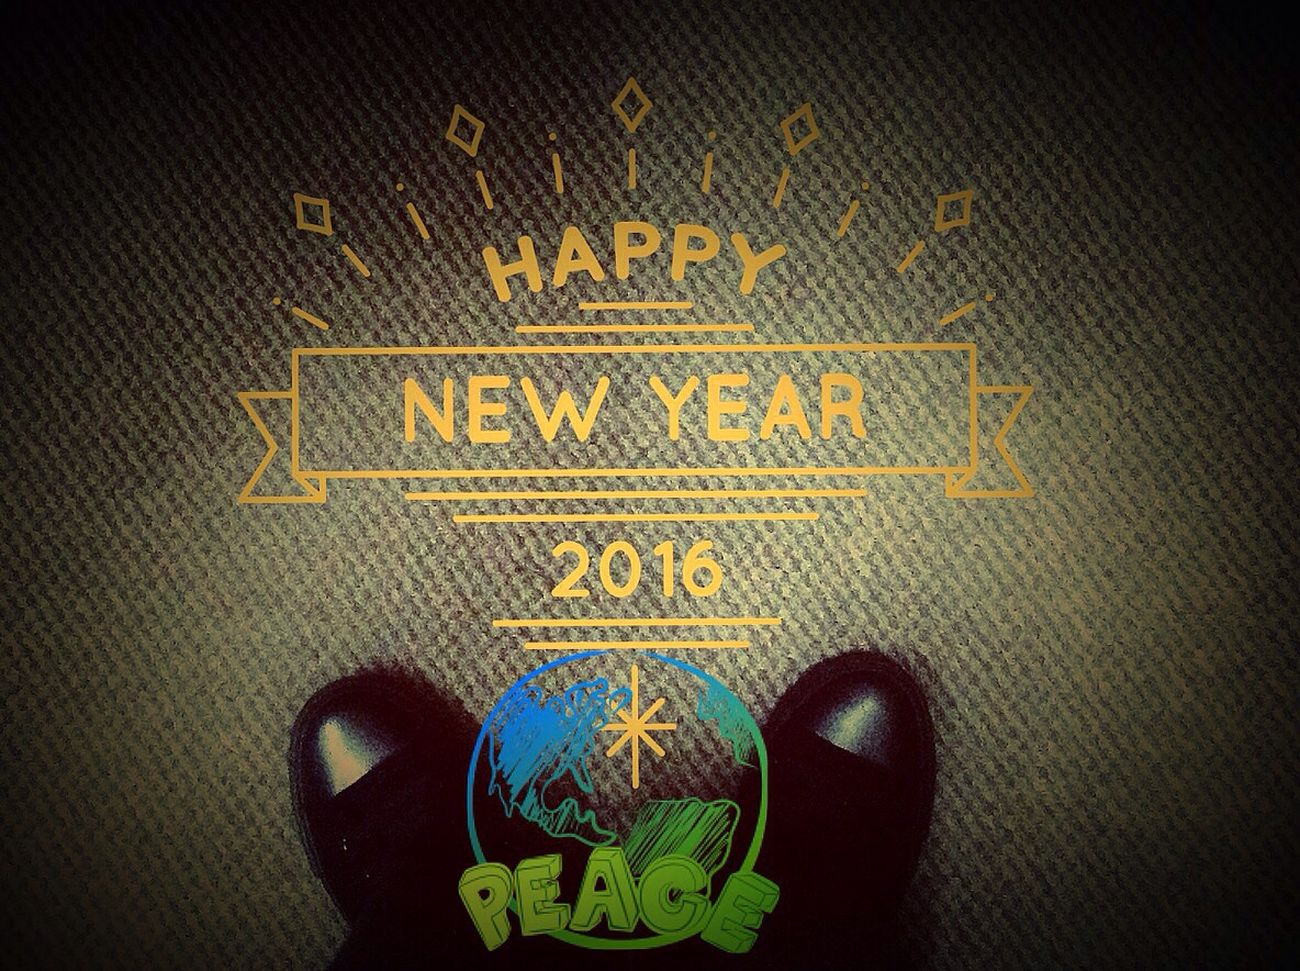 """Hello 1.1.2016"" Newday Brand New Day NewYear 2016 Taking Pictures Photography Taking Photos Photo First Firstpicture Photooftheday Popular Photos Street Photography Photo♡ Eye4photography  EyeEmBestPics Open Edit TheMinimals (less Edit Juxt Photography) Peace Love EyeEm Best Shots The Minimals (less Edit Juxt Photography) No Edit No Fun Getting Inspired Hope"